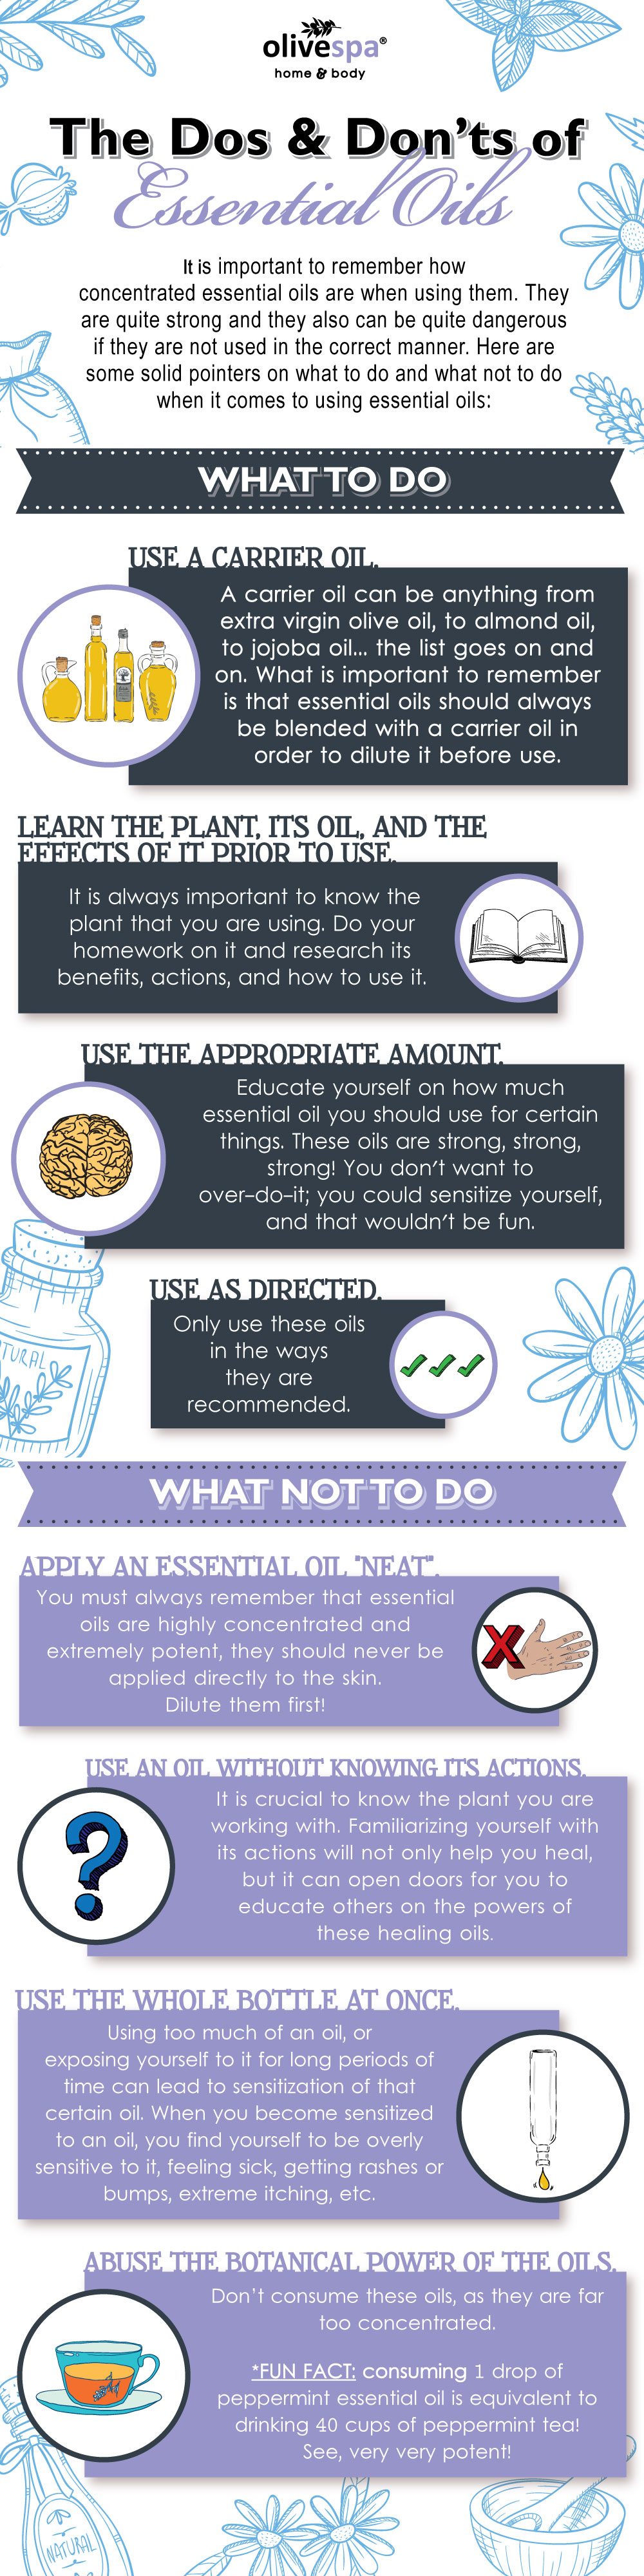 8.5x14-Essential-Oil-Infographic.jpg